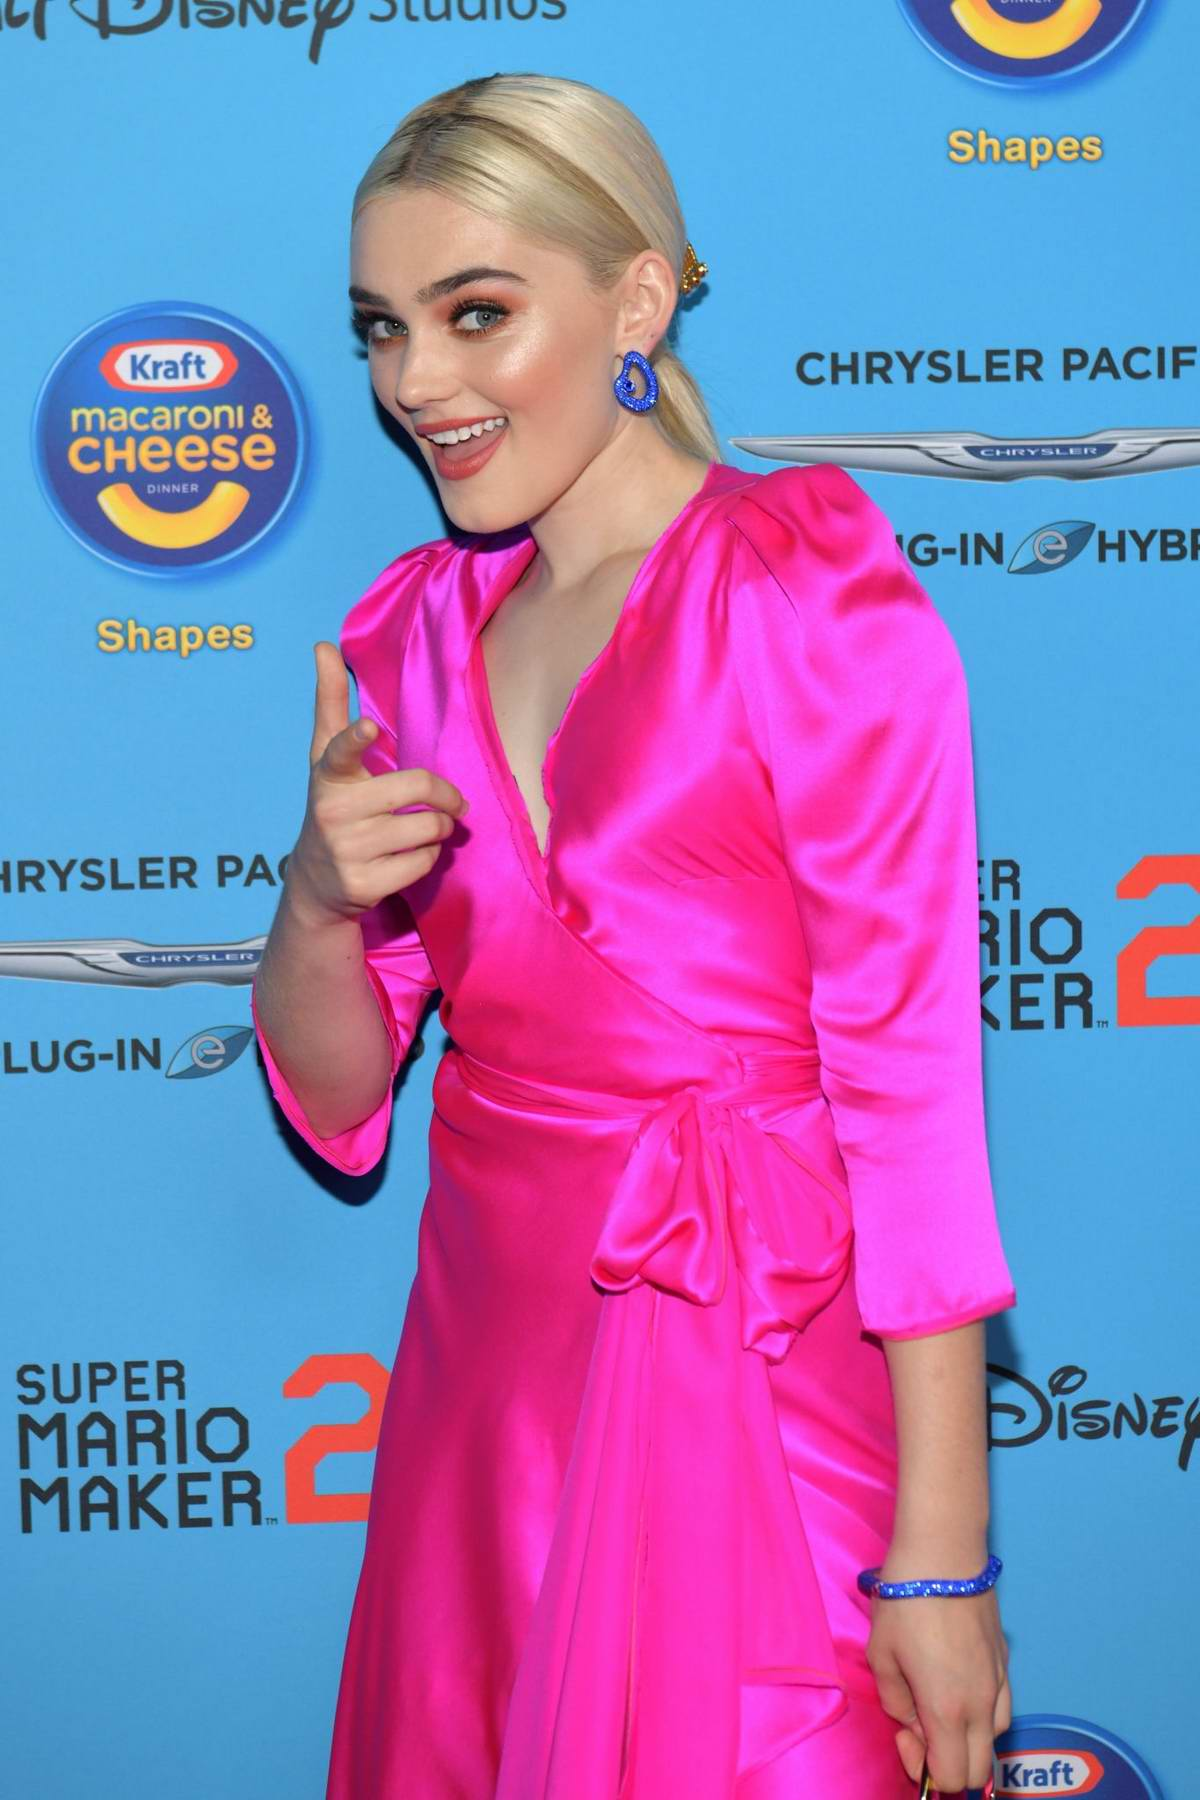 meg-donnelly-attends-the-2019-radio-disney-music-awards-ardys-2019-at-the-cbs-radford-studios-in-studio-city-california-160619_5.jpg